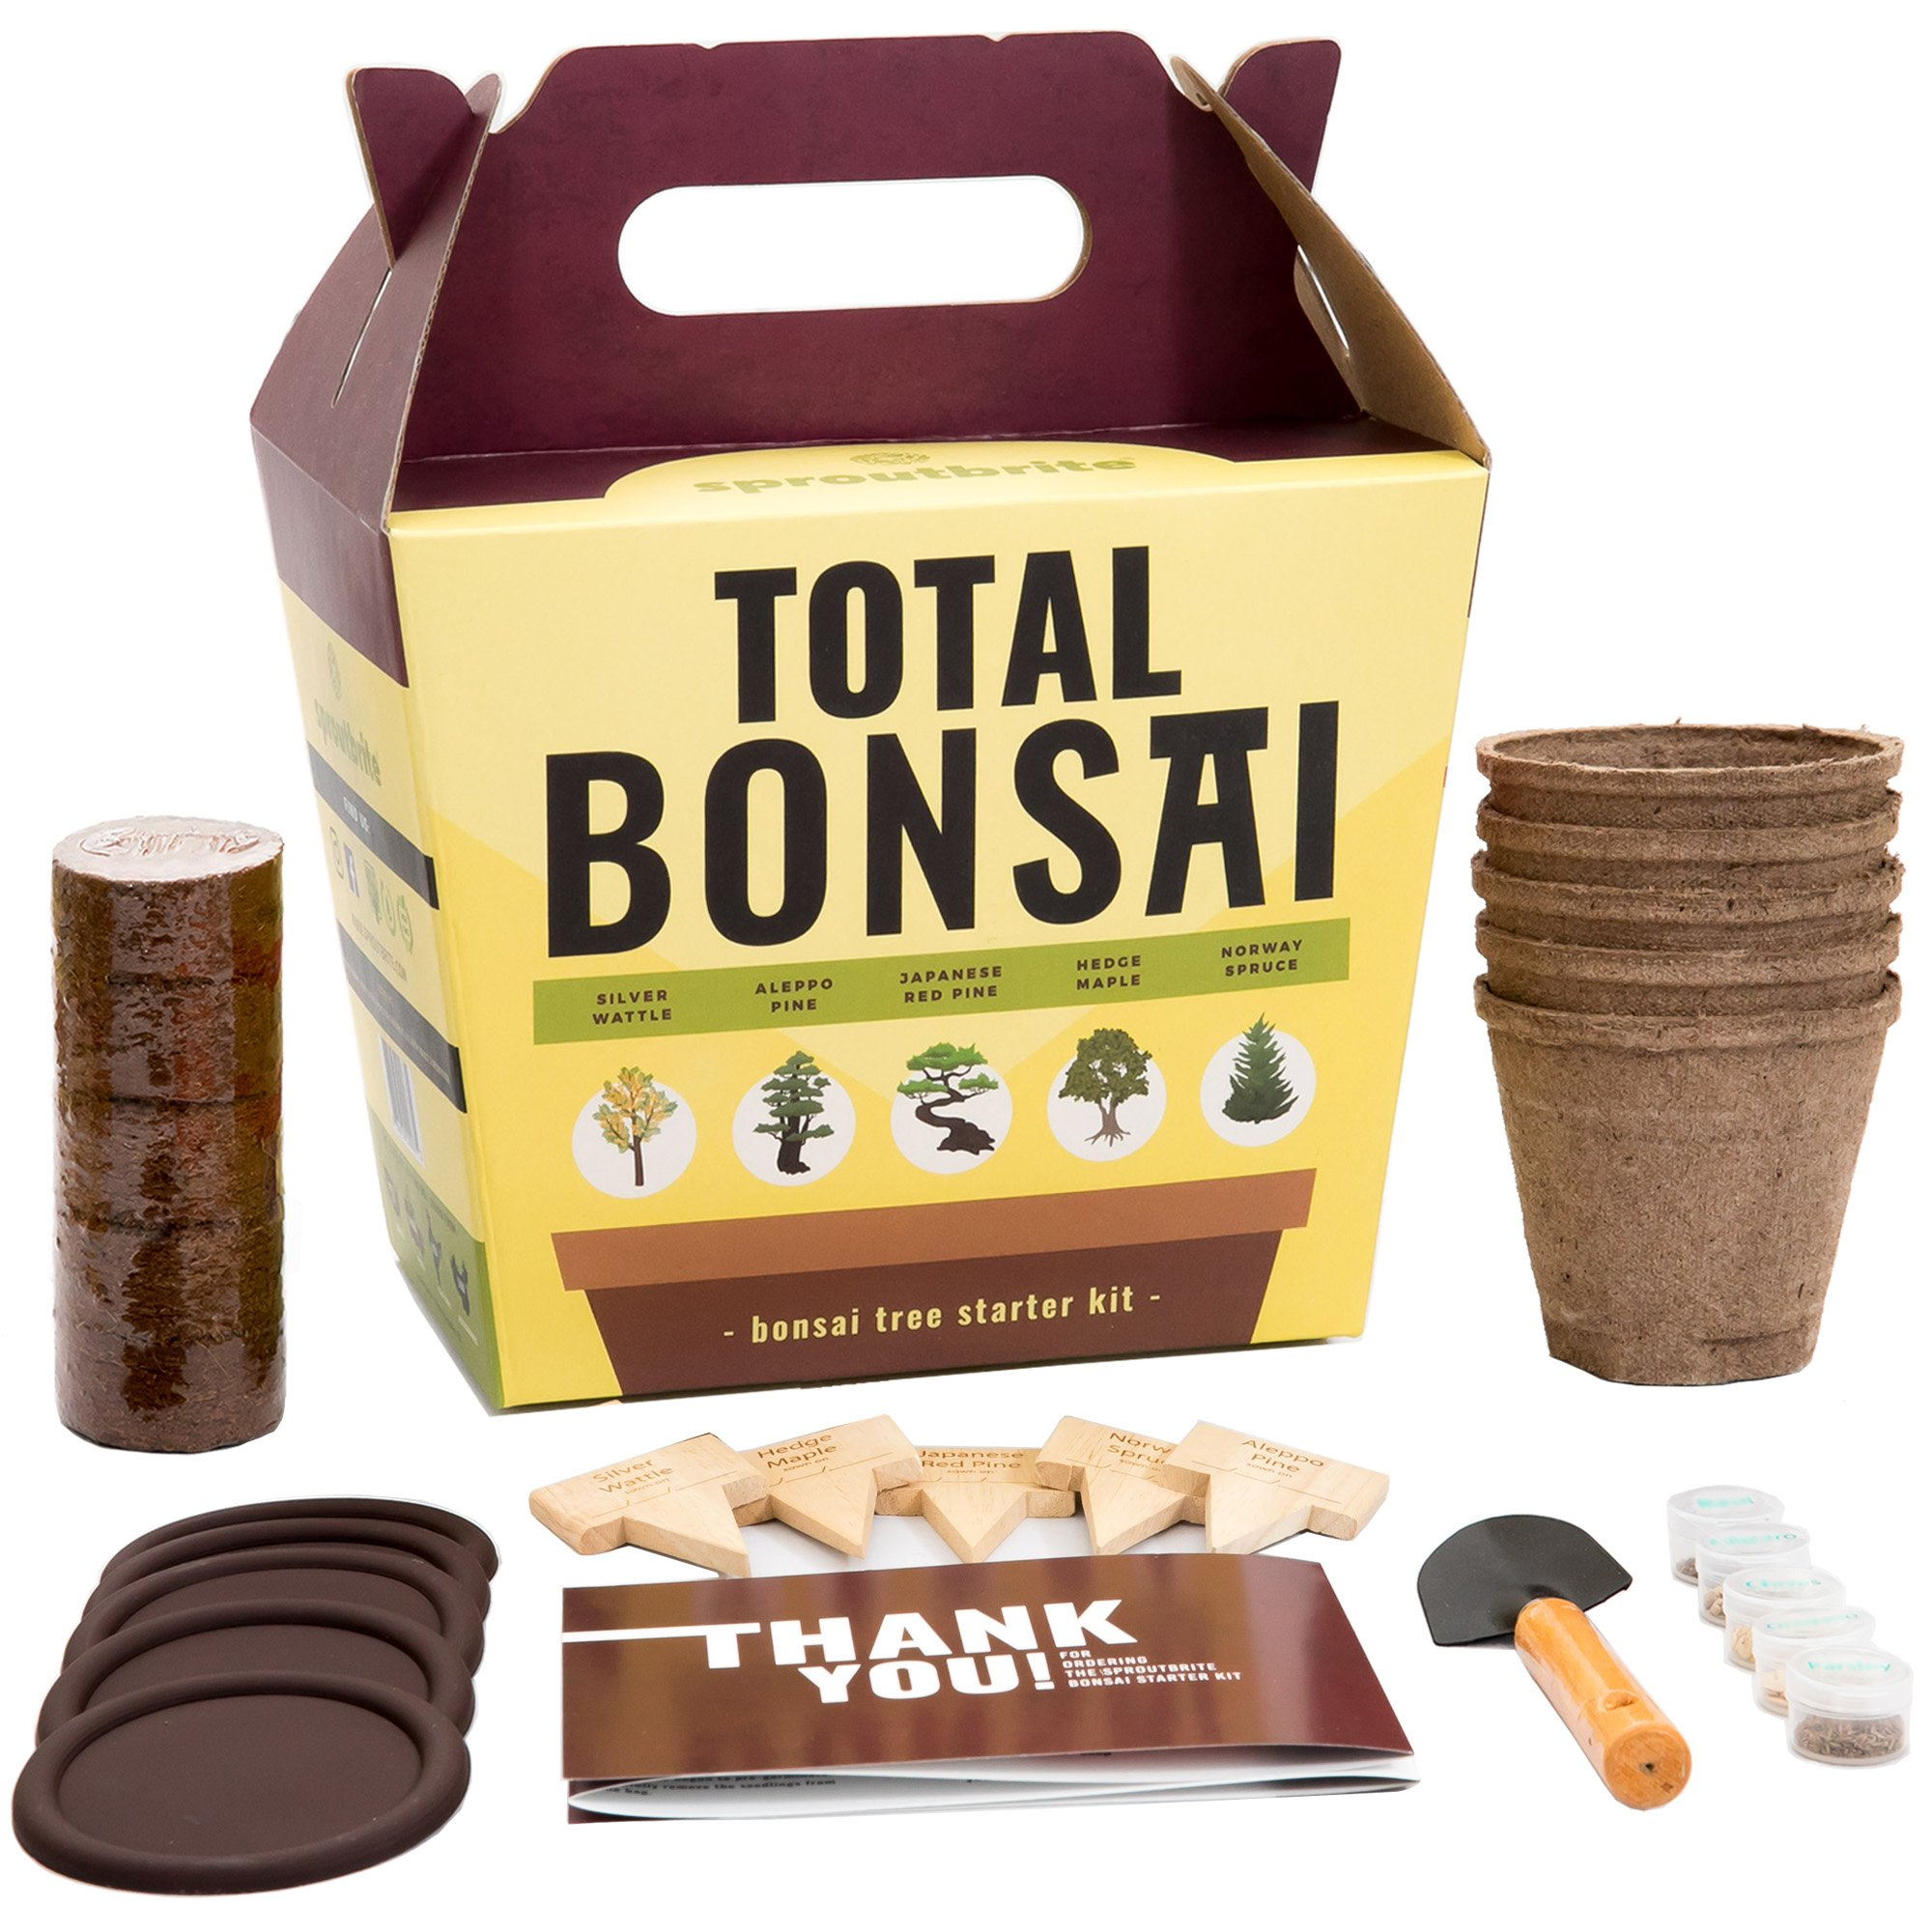 Sproutbrite Bonsai Tree Seed Starter Kit for Beginners - 5 of The Easiest Tree Types to Start Indoors - Complete Mini Bonsai Plant Growing kit - a Unique Gardening Gift by Sproutbrite